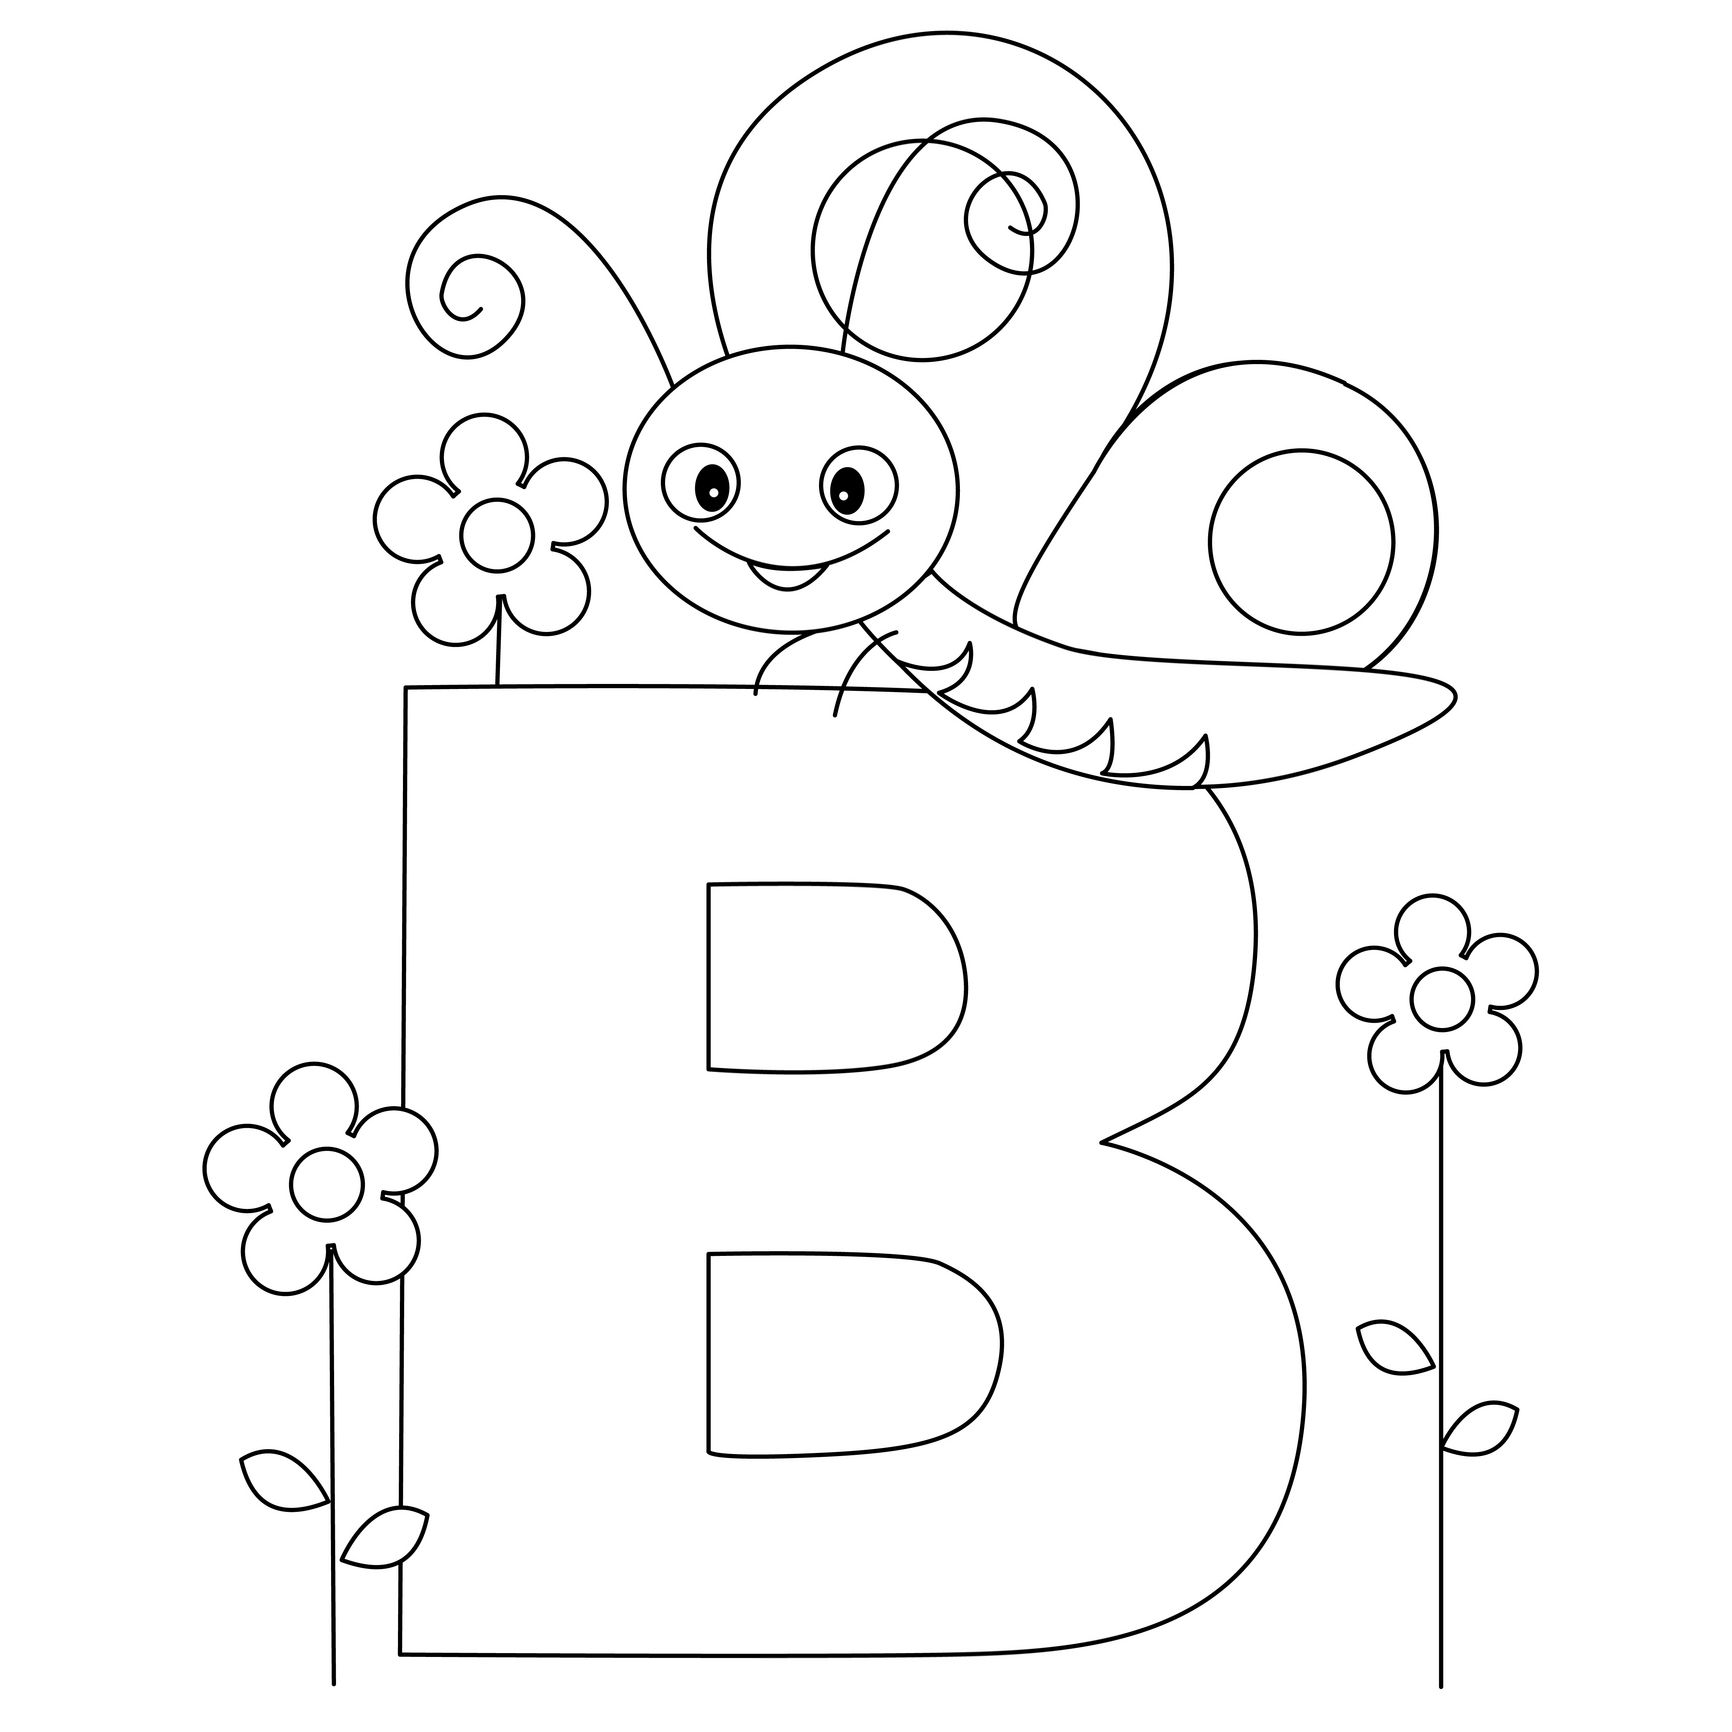 animal alphabet letter b is for butterfly! here's a simple ... - Alphabet Printable Coloring Pages